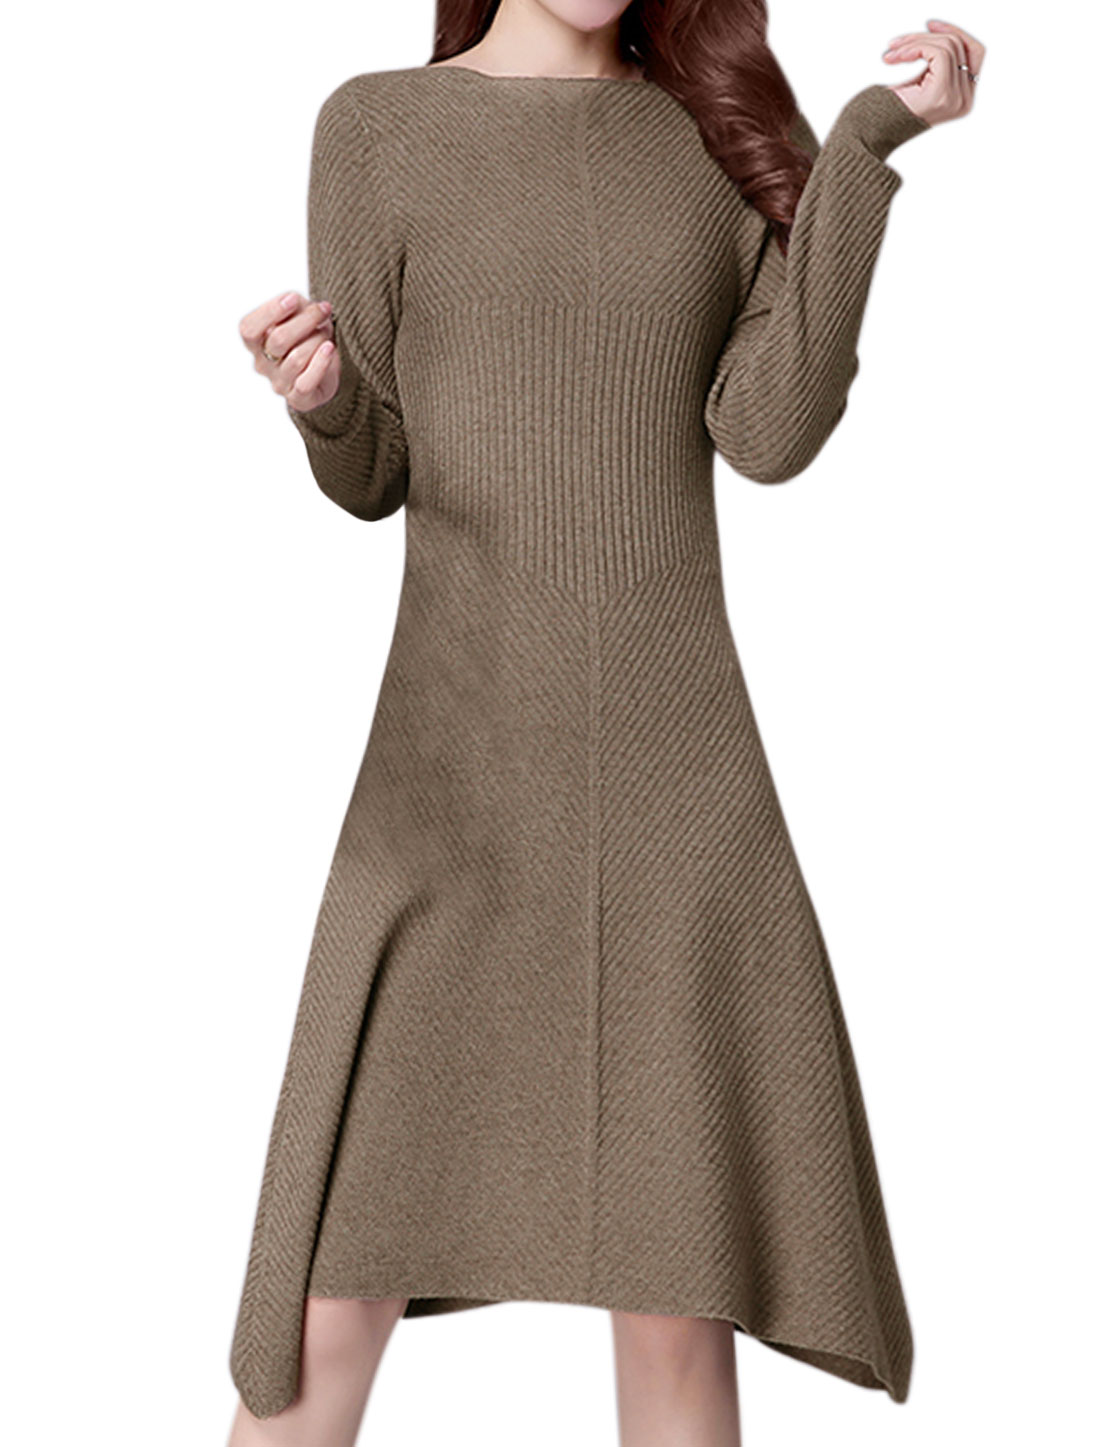 Women Long Sleeves Ribbed Design Knee Length A Line Knit Dress Brown XS